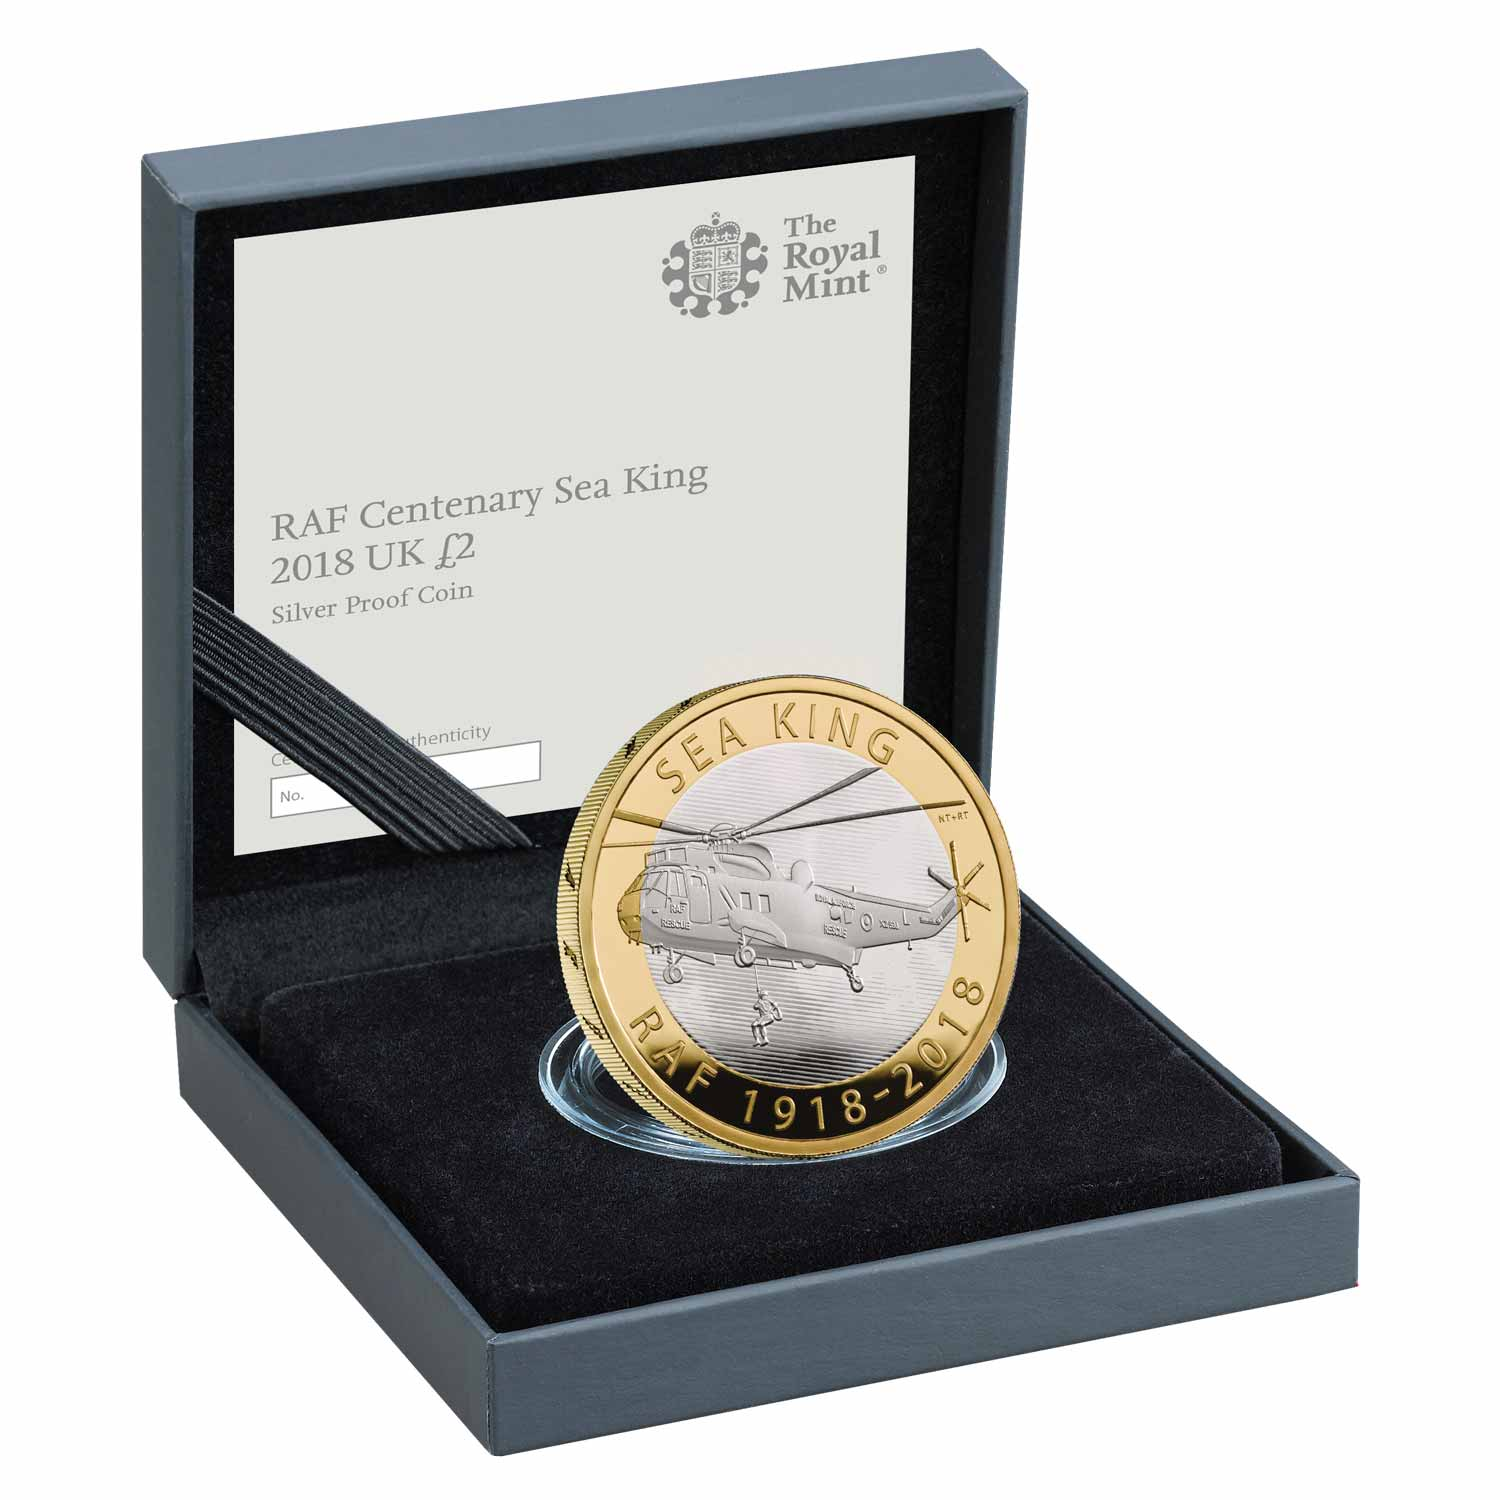 RAF Centenary Sea King 2018 UK £2 Silver Proof Coin